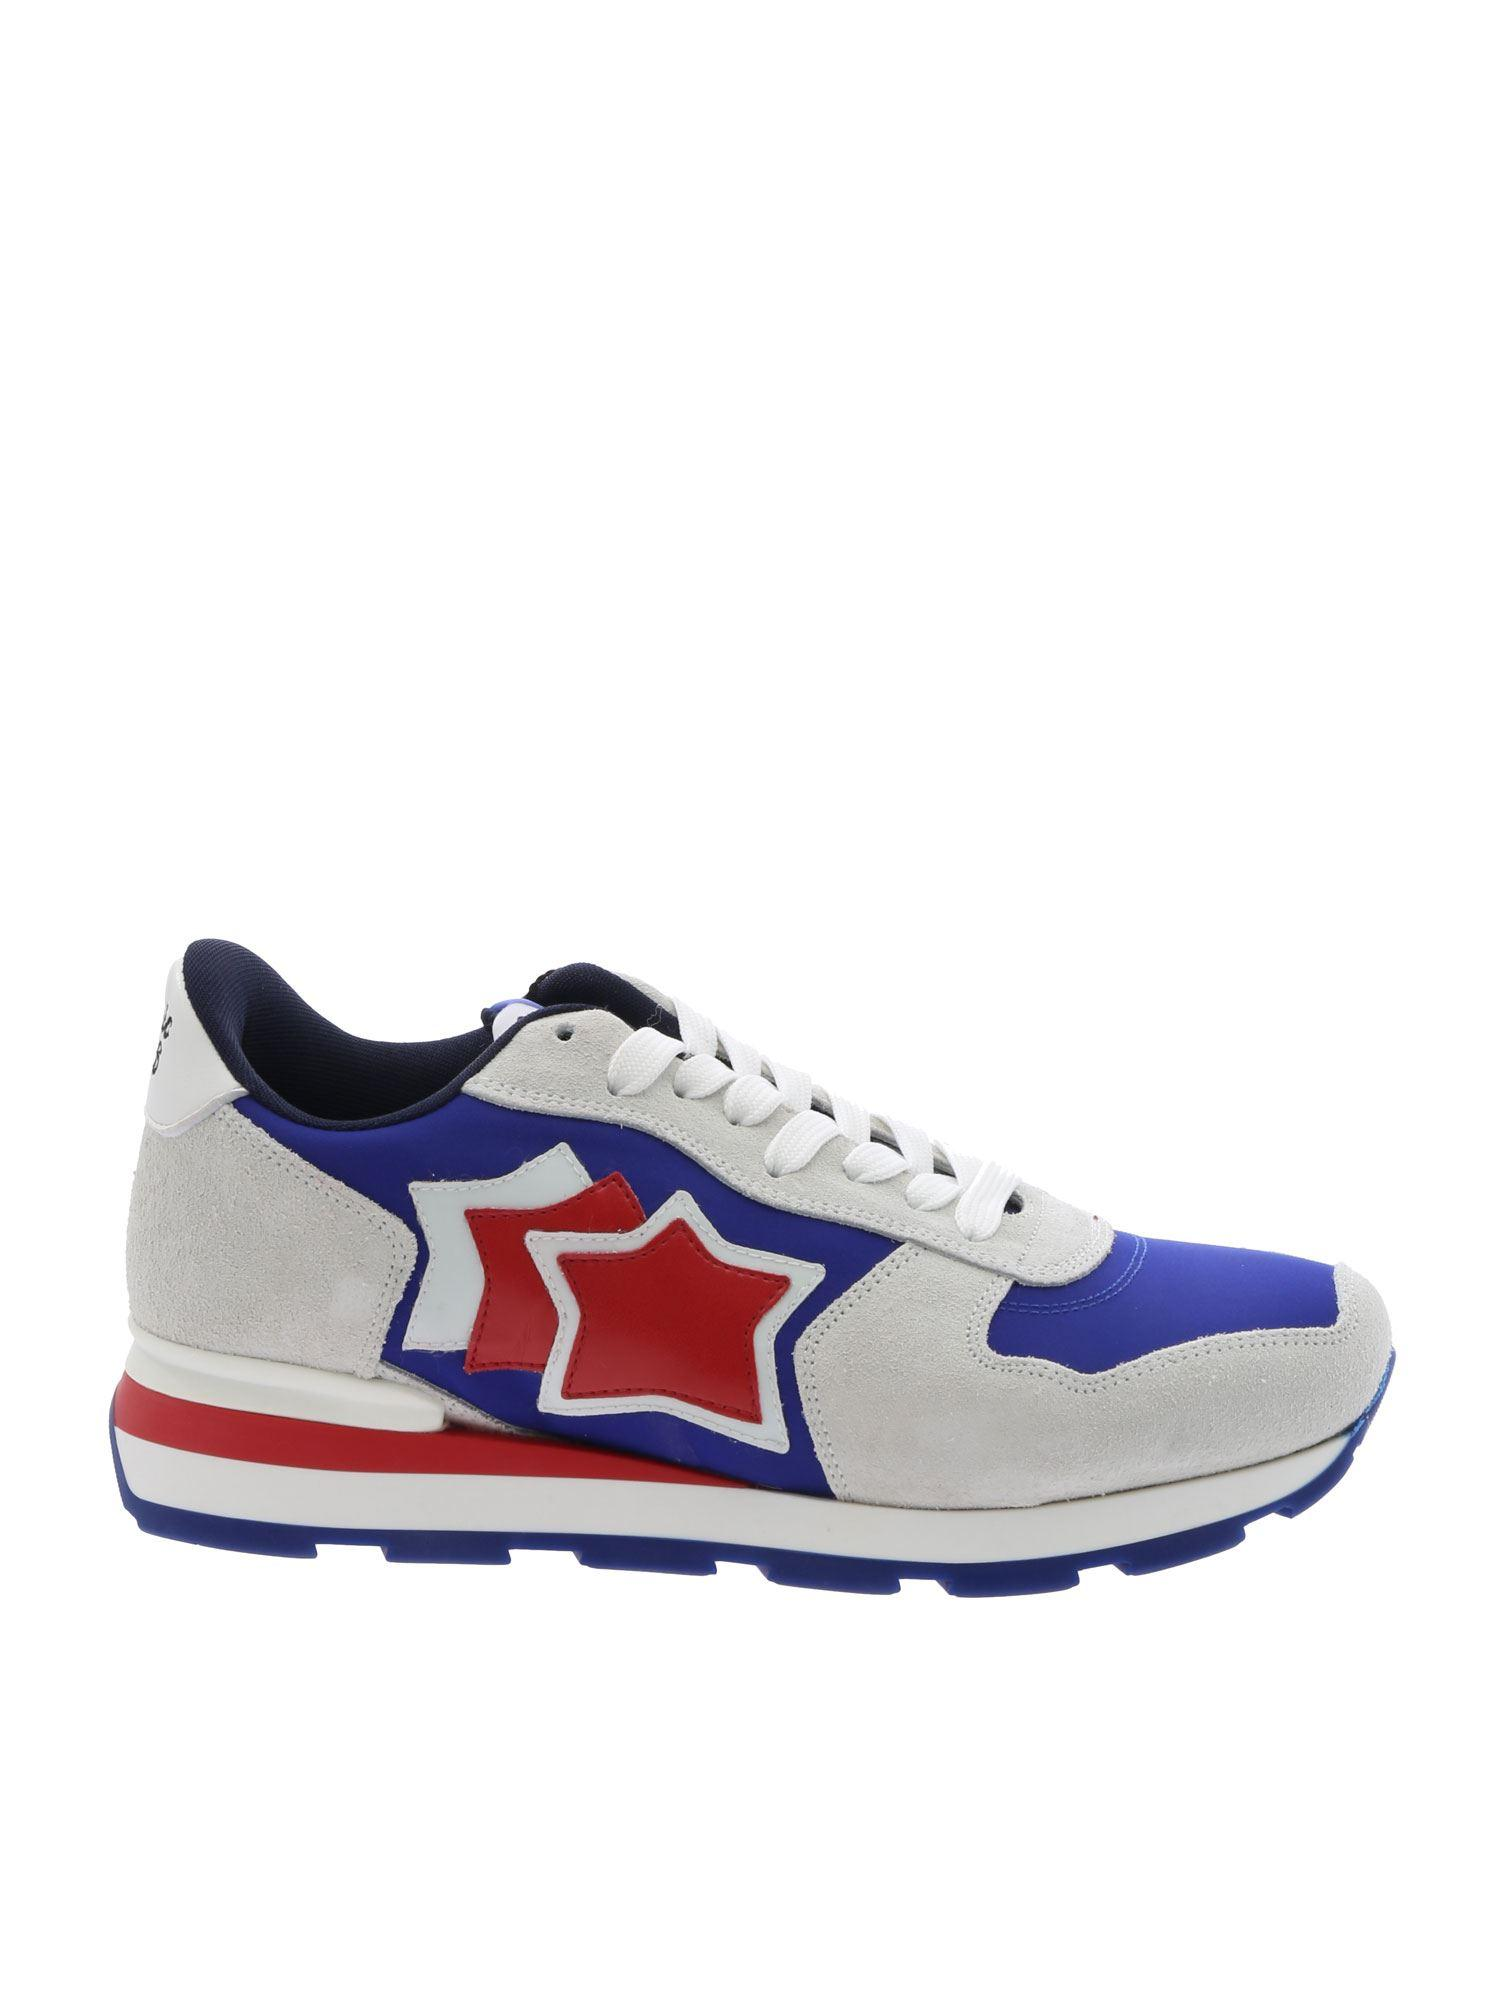 1ceb04328ba7b Lyst - Atlantic Stars Antares Blue And Ice Sneakers in Blue for Men